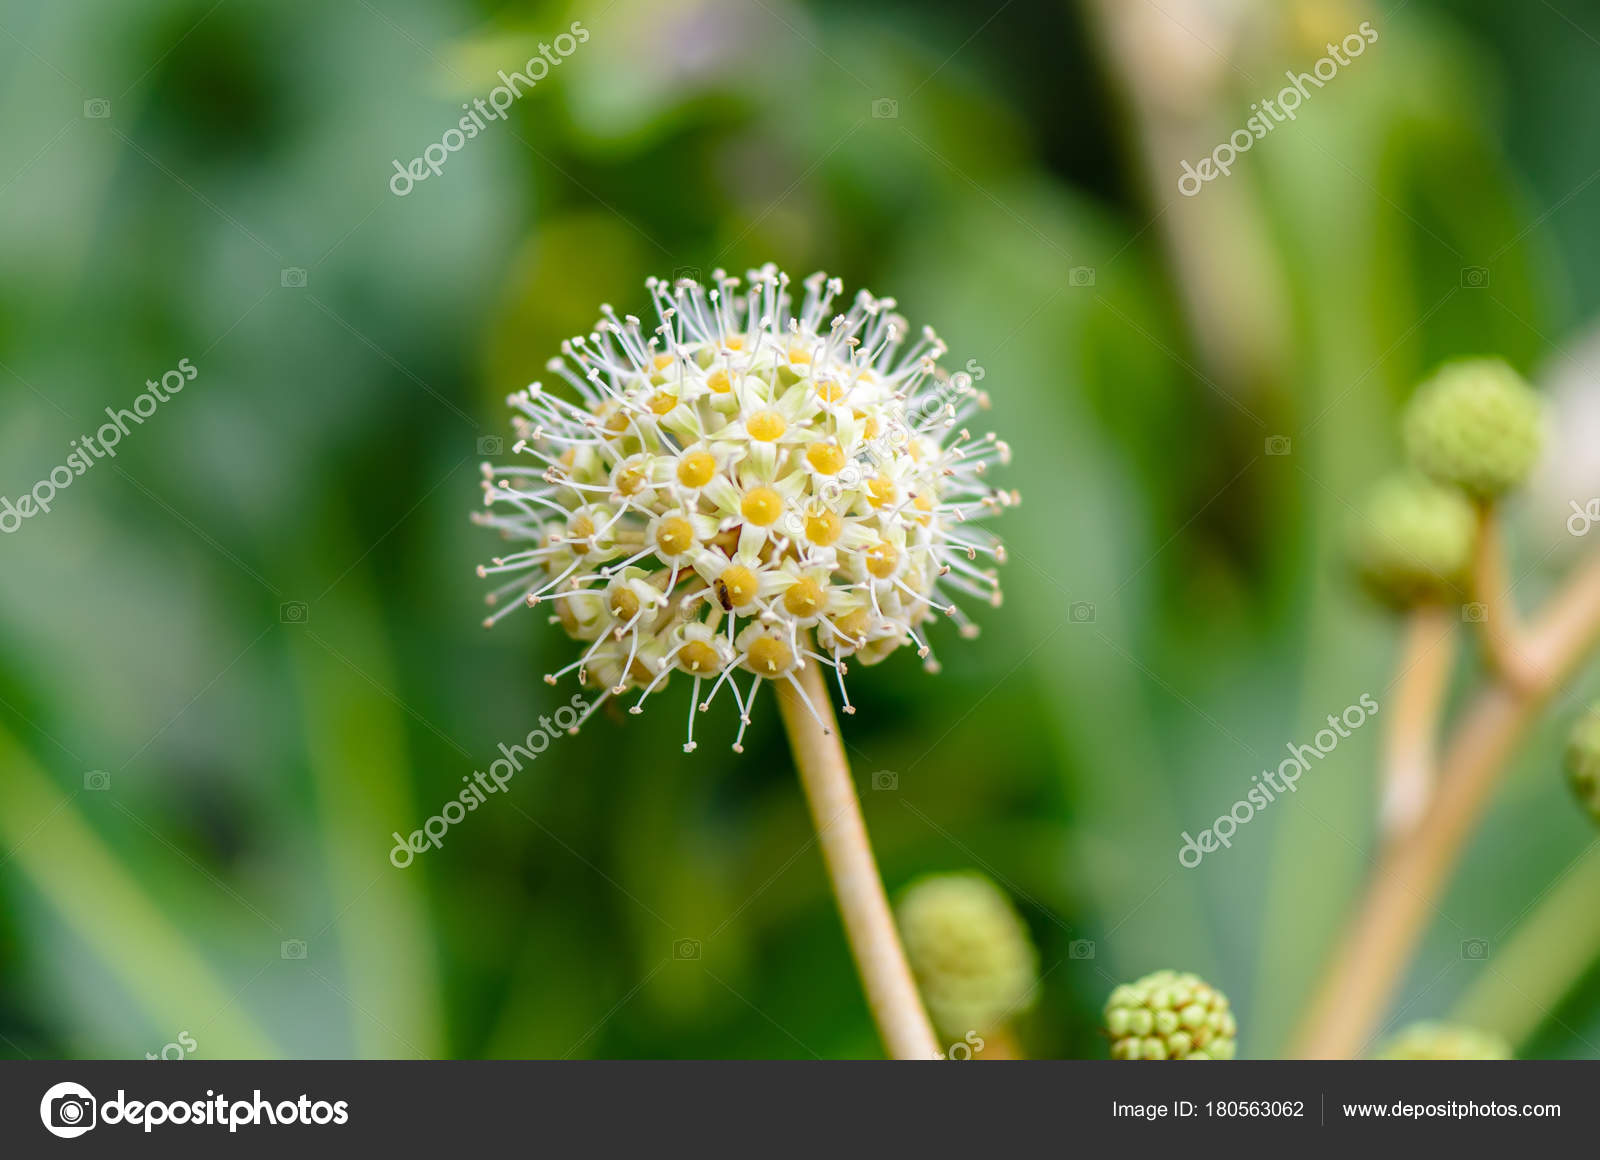 Plant Of White Yellow Round Flower With Many Small Flowers Sta